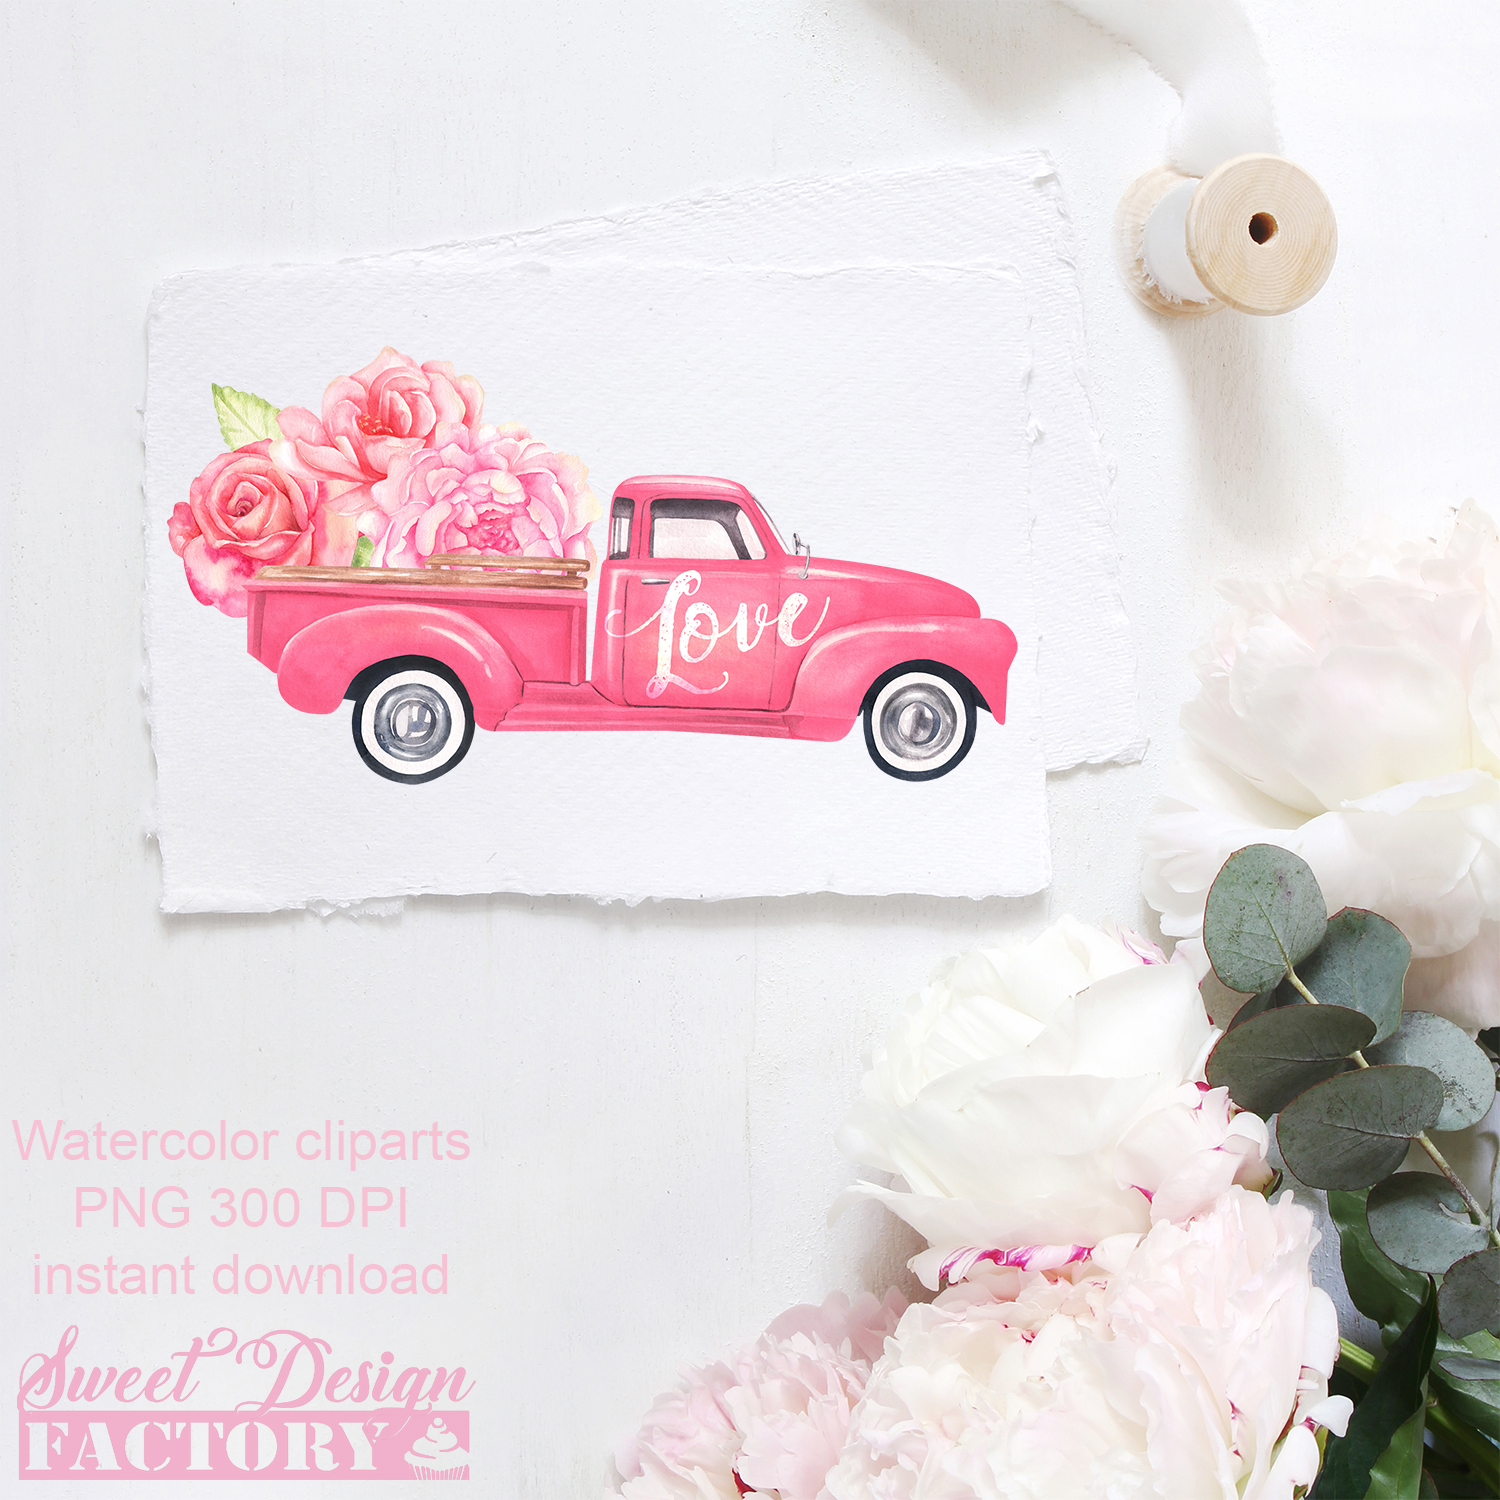 Valentine's day truck watercolor clipart example image 5